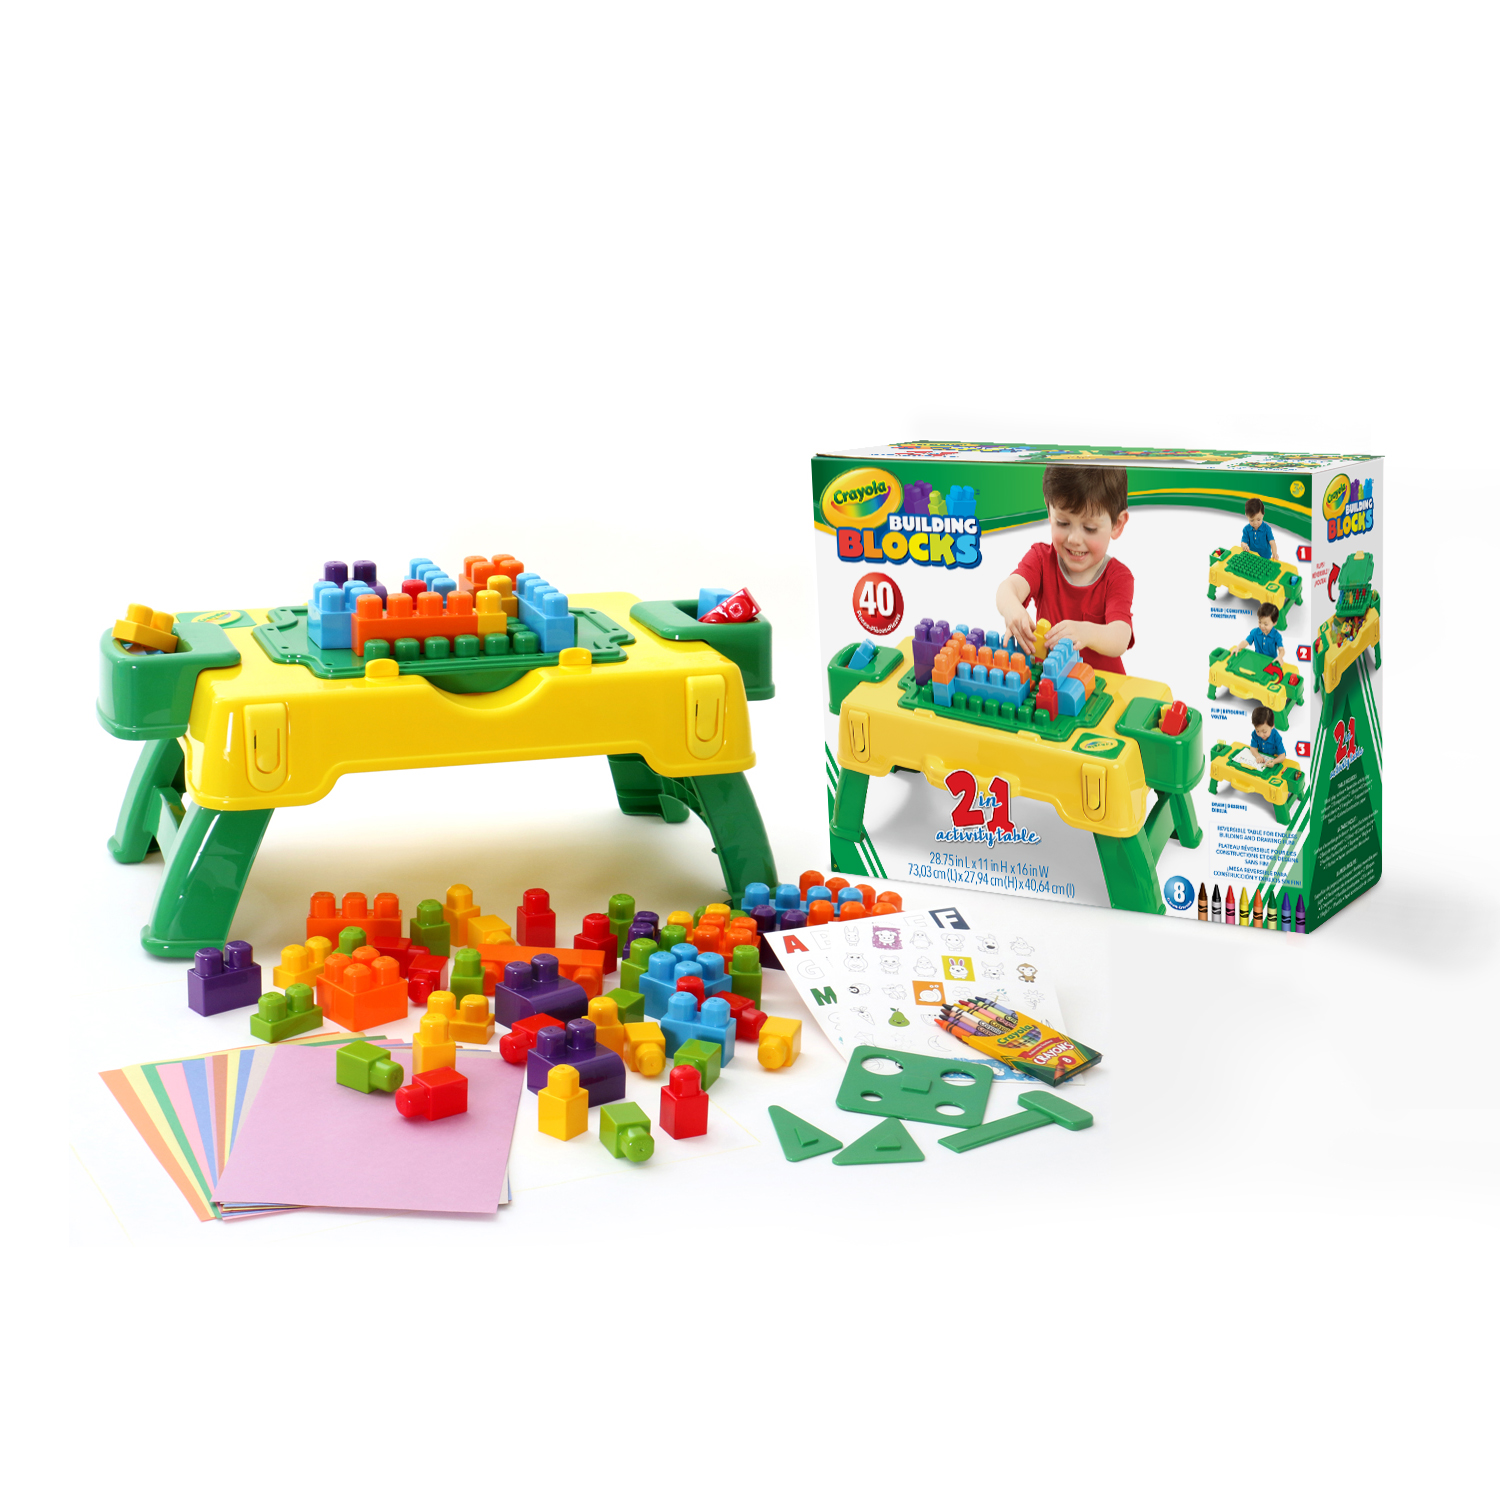 Crayola Kids@Work 40 pc Build & Draw Activity Table